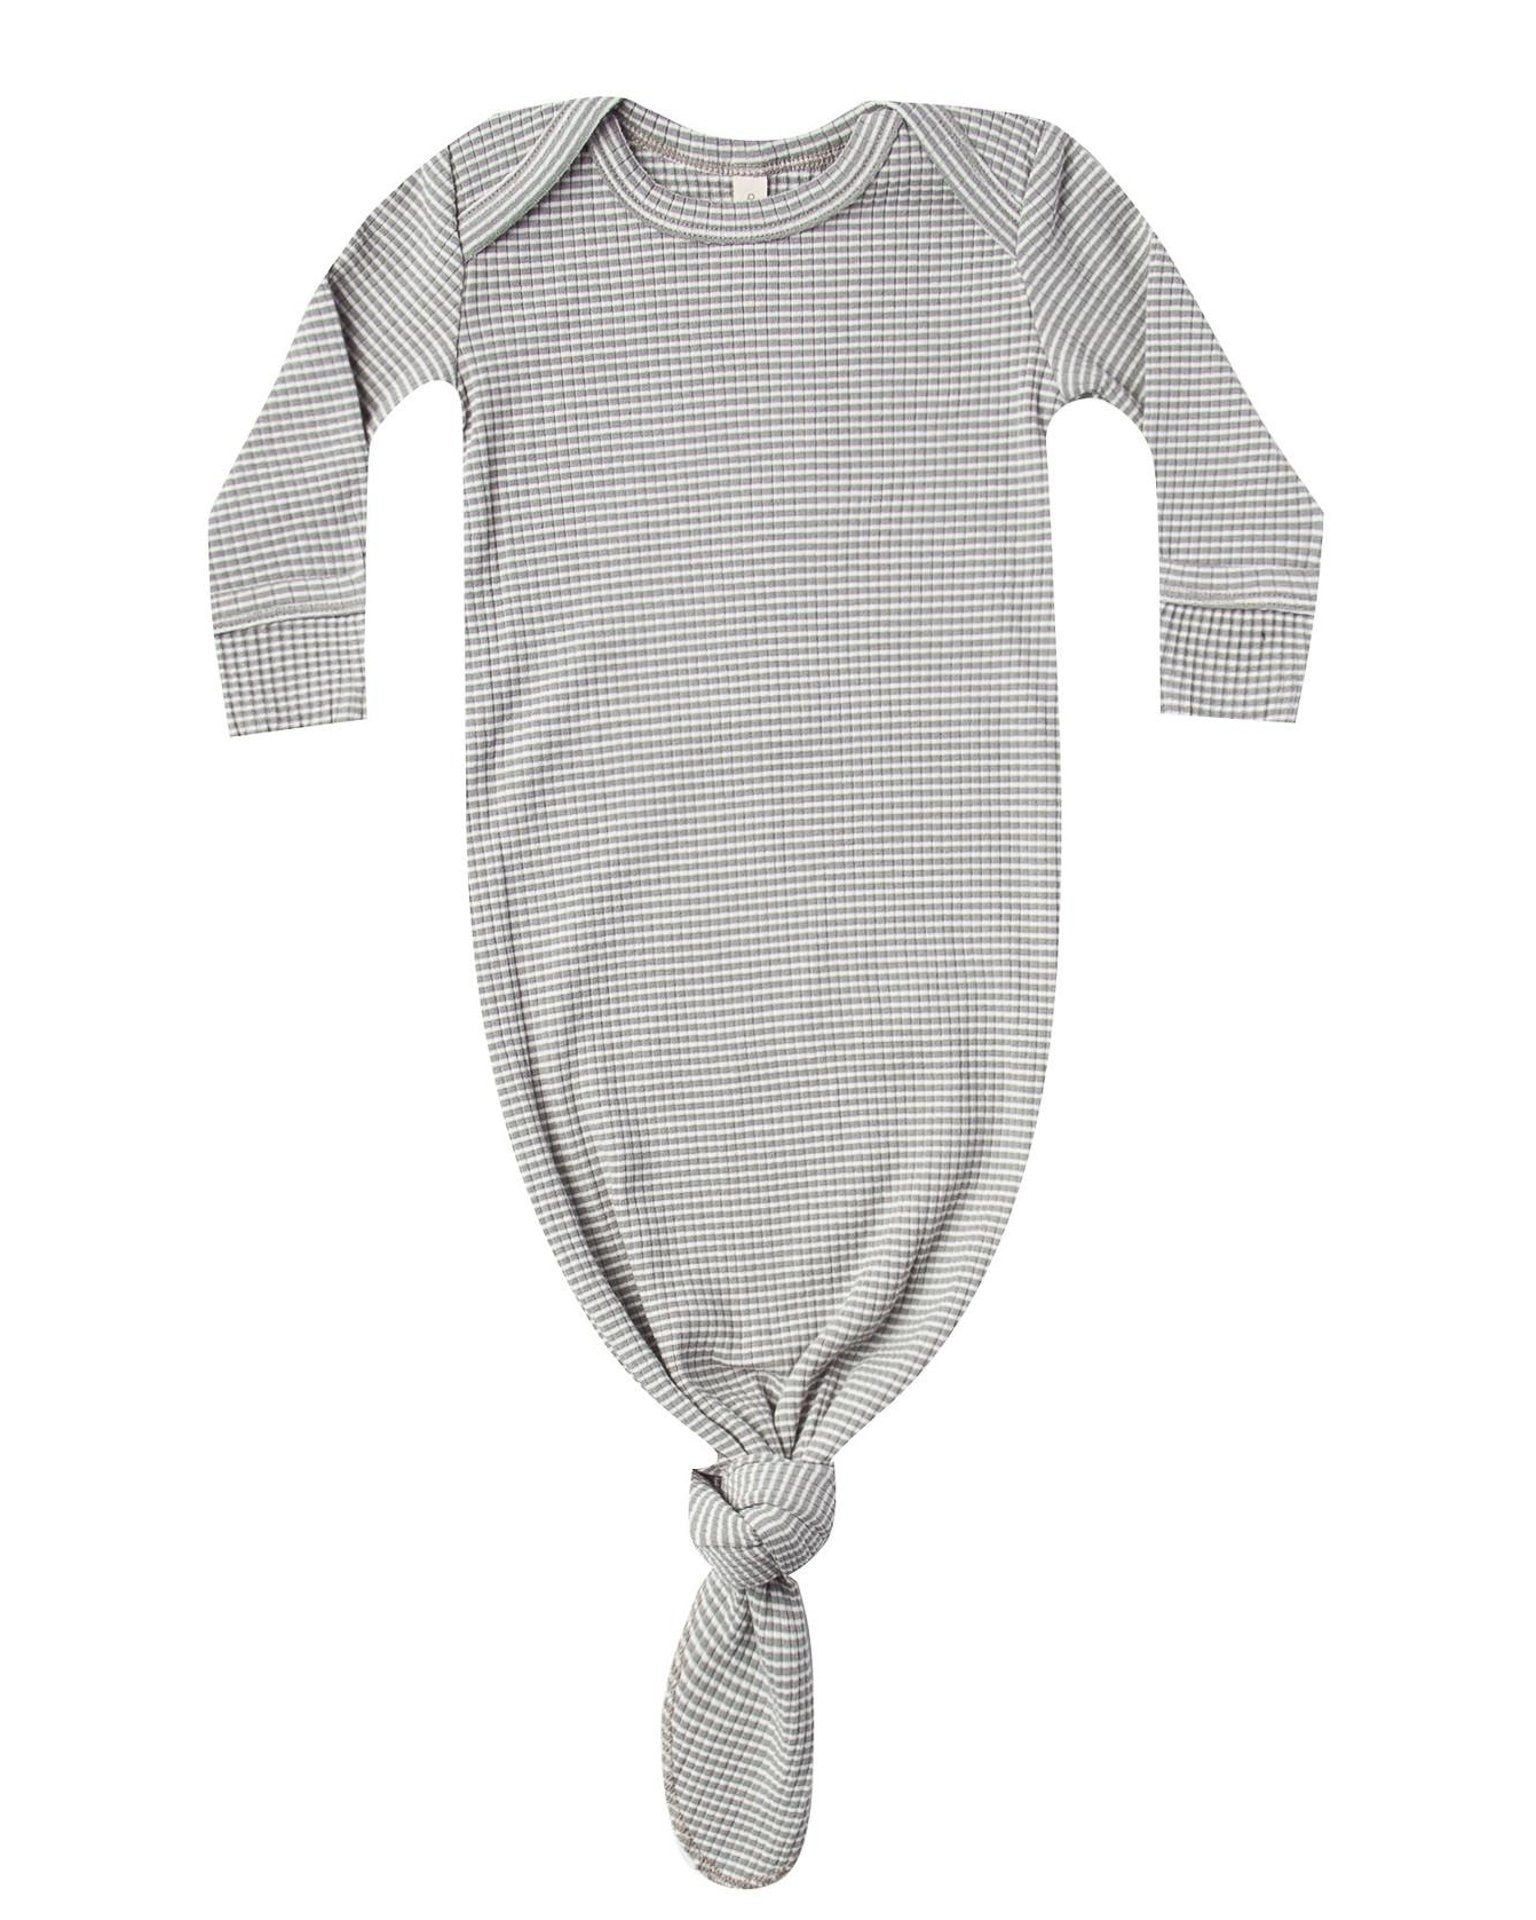 Little quincy mae layette ribbed knotted baby gown in eucalyptus stripe